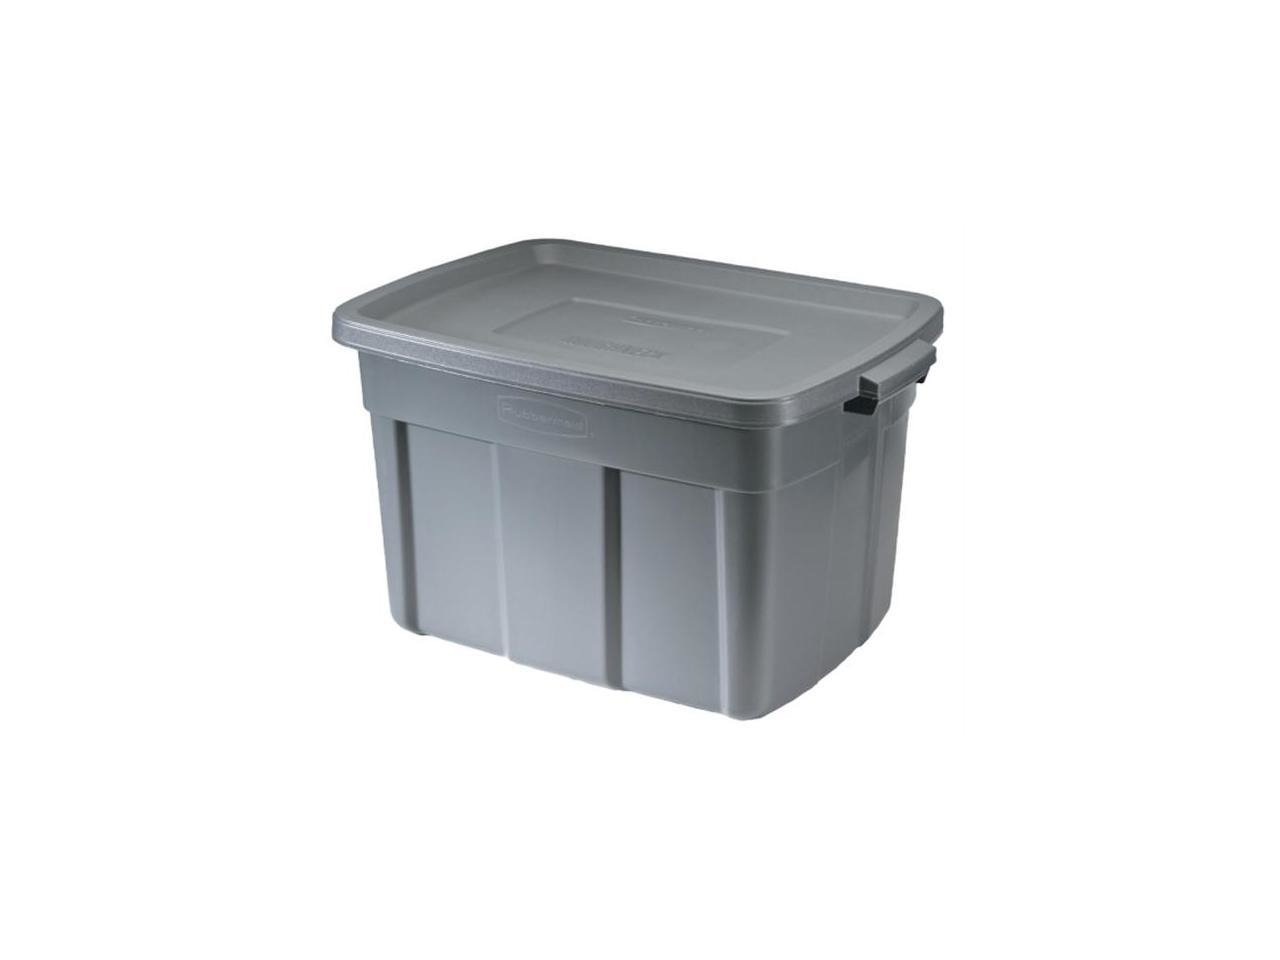 Rubbermaid 25 Gallon Roughneck Storage Tote FG2245CPDIM - Pack of 9 nib 8 pack scepter corporation 07450 1 25 gallon epa carb gas can auth dealer